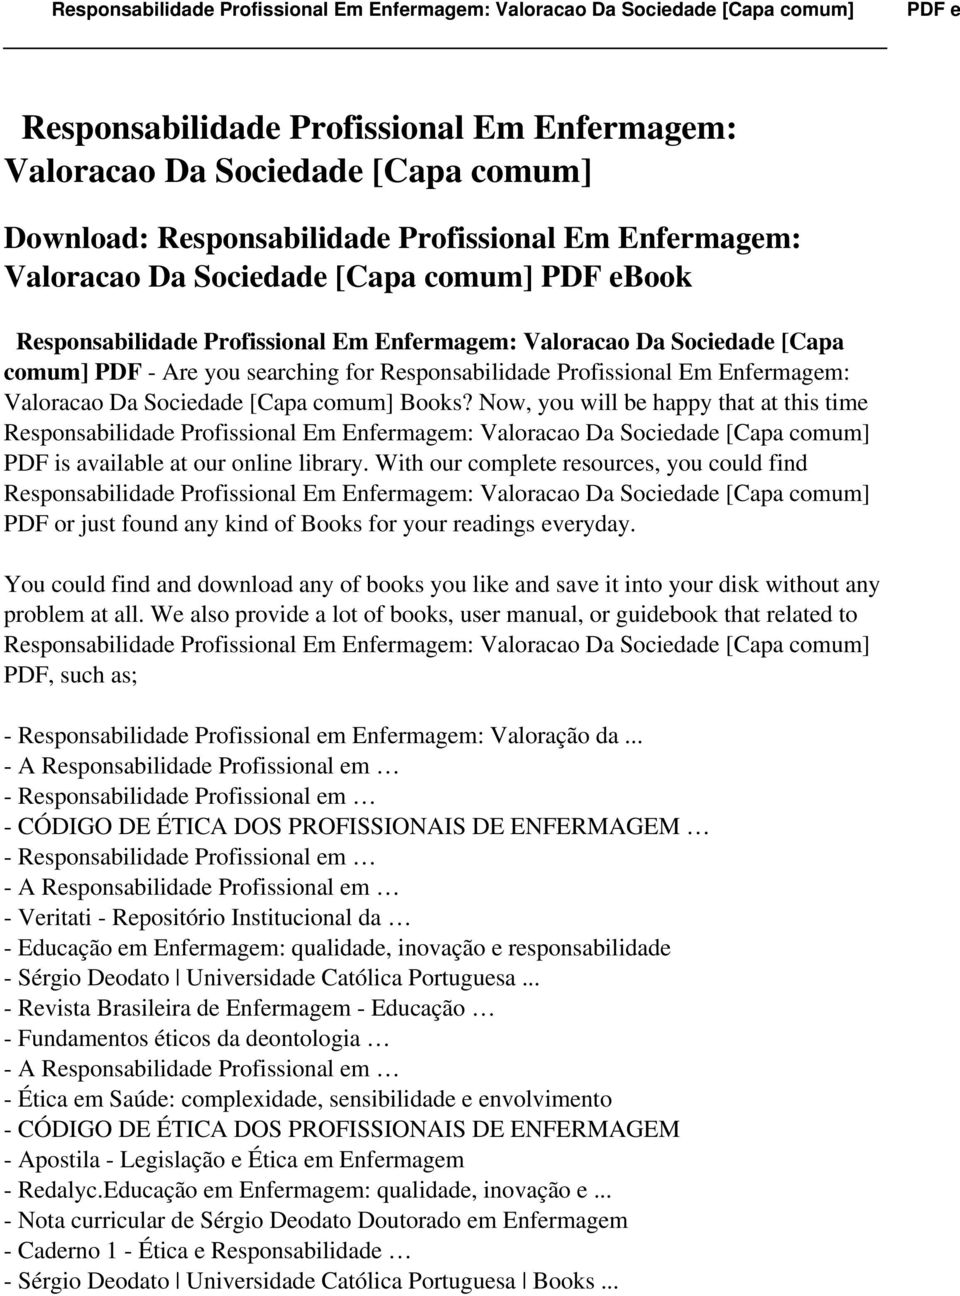 Now, you will be happy that at this time Responsabilidade Profissional Em Enfermagem: Valoracao Da Sociedade [Capa comum] PDF is available at our online library.